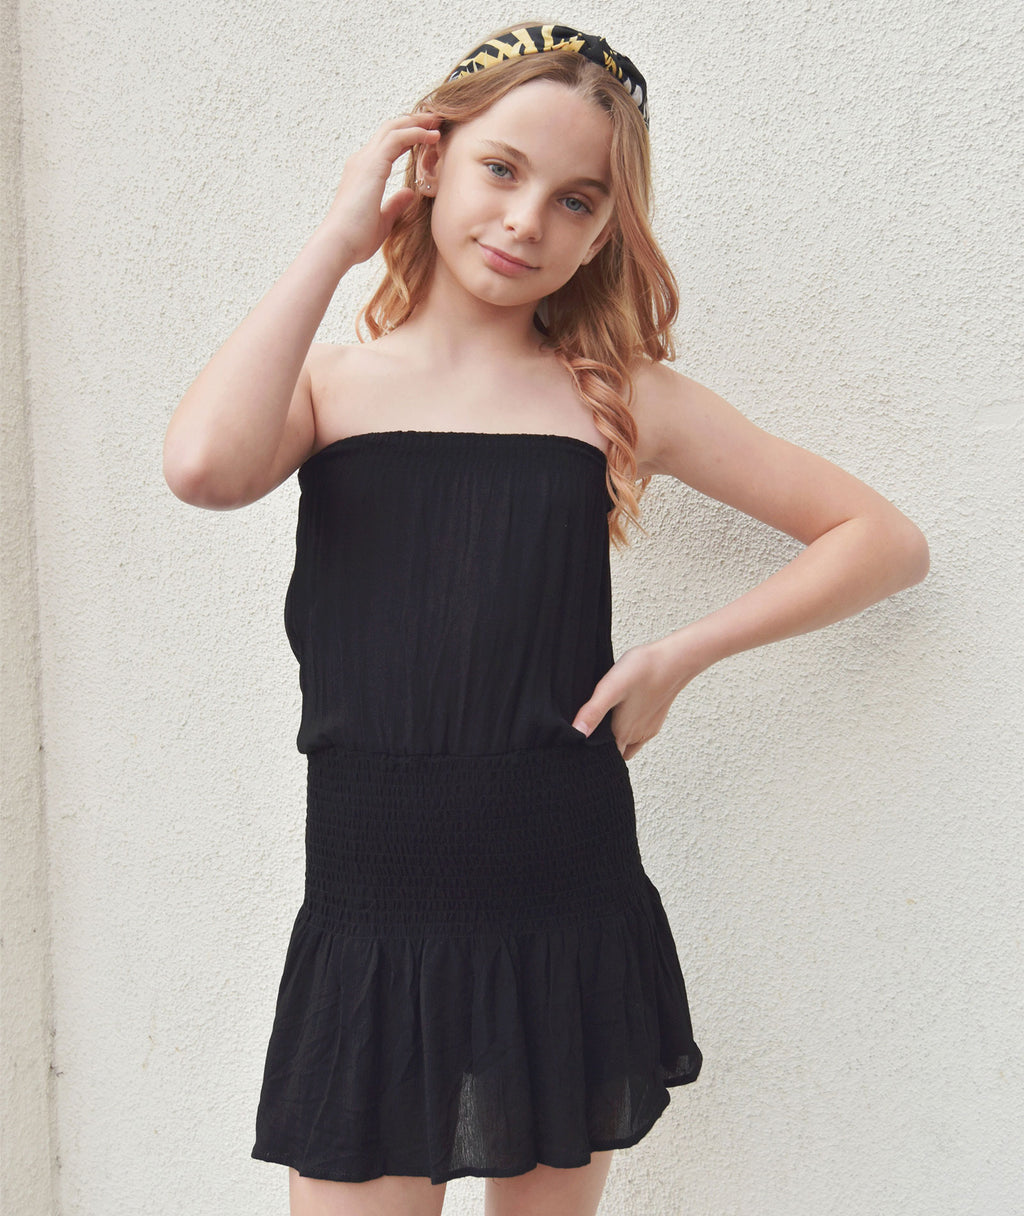 Katie J NYC Girls Cori Black Skort Dress